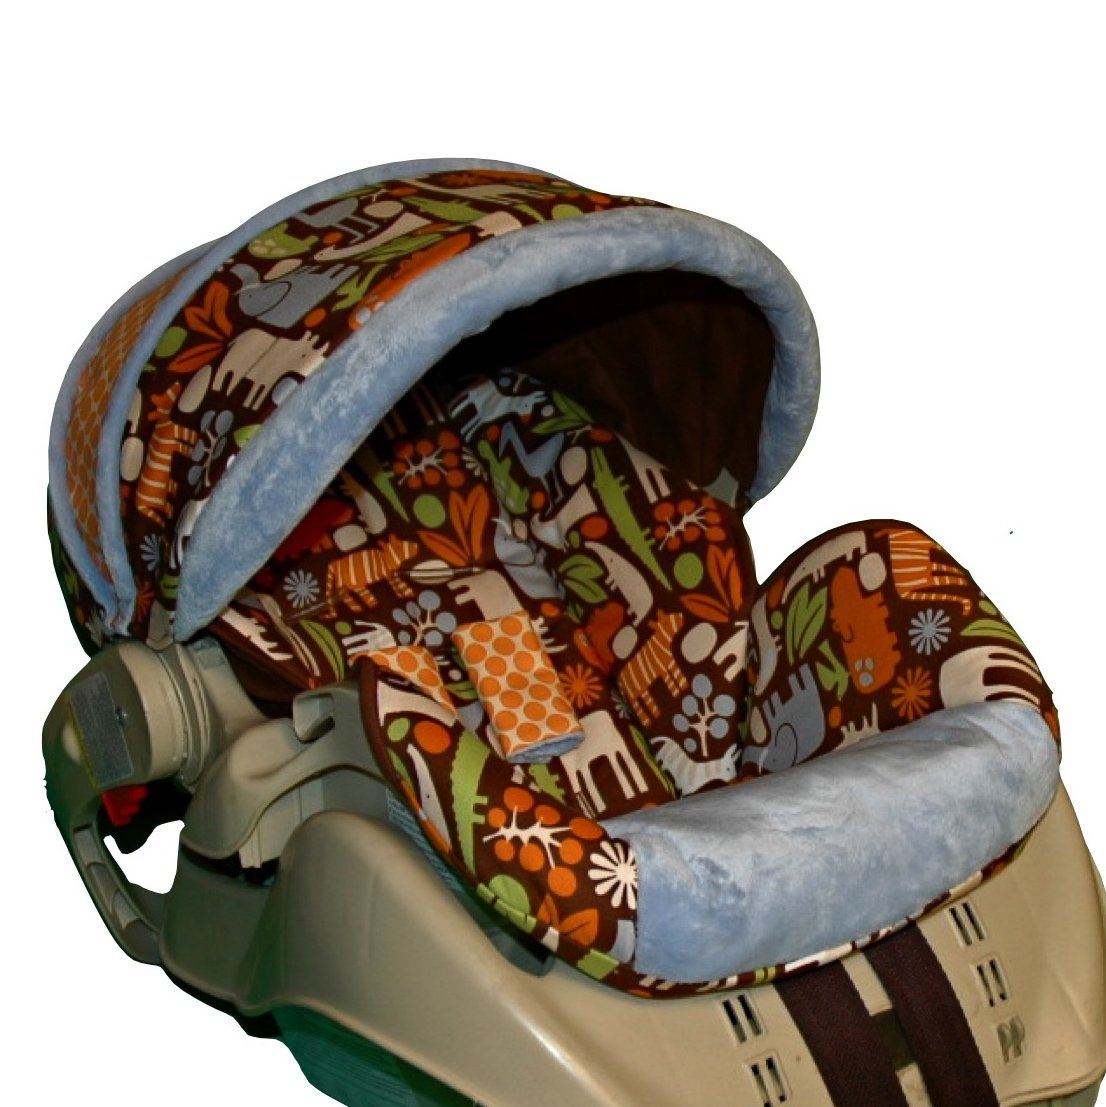 graco snugride custom replacement infant car seat cover brown zoo. Black Bedroom Furniture Sets. Home Design Ideas